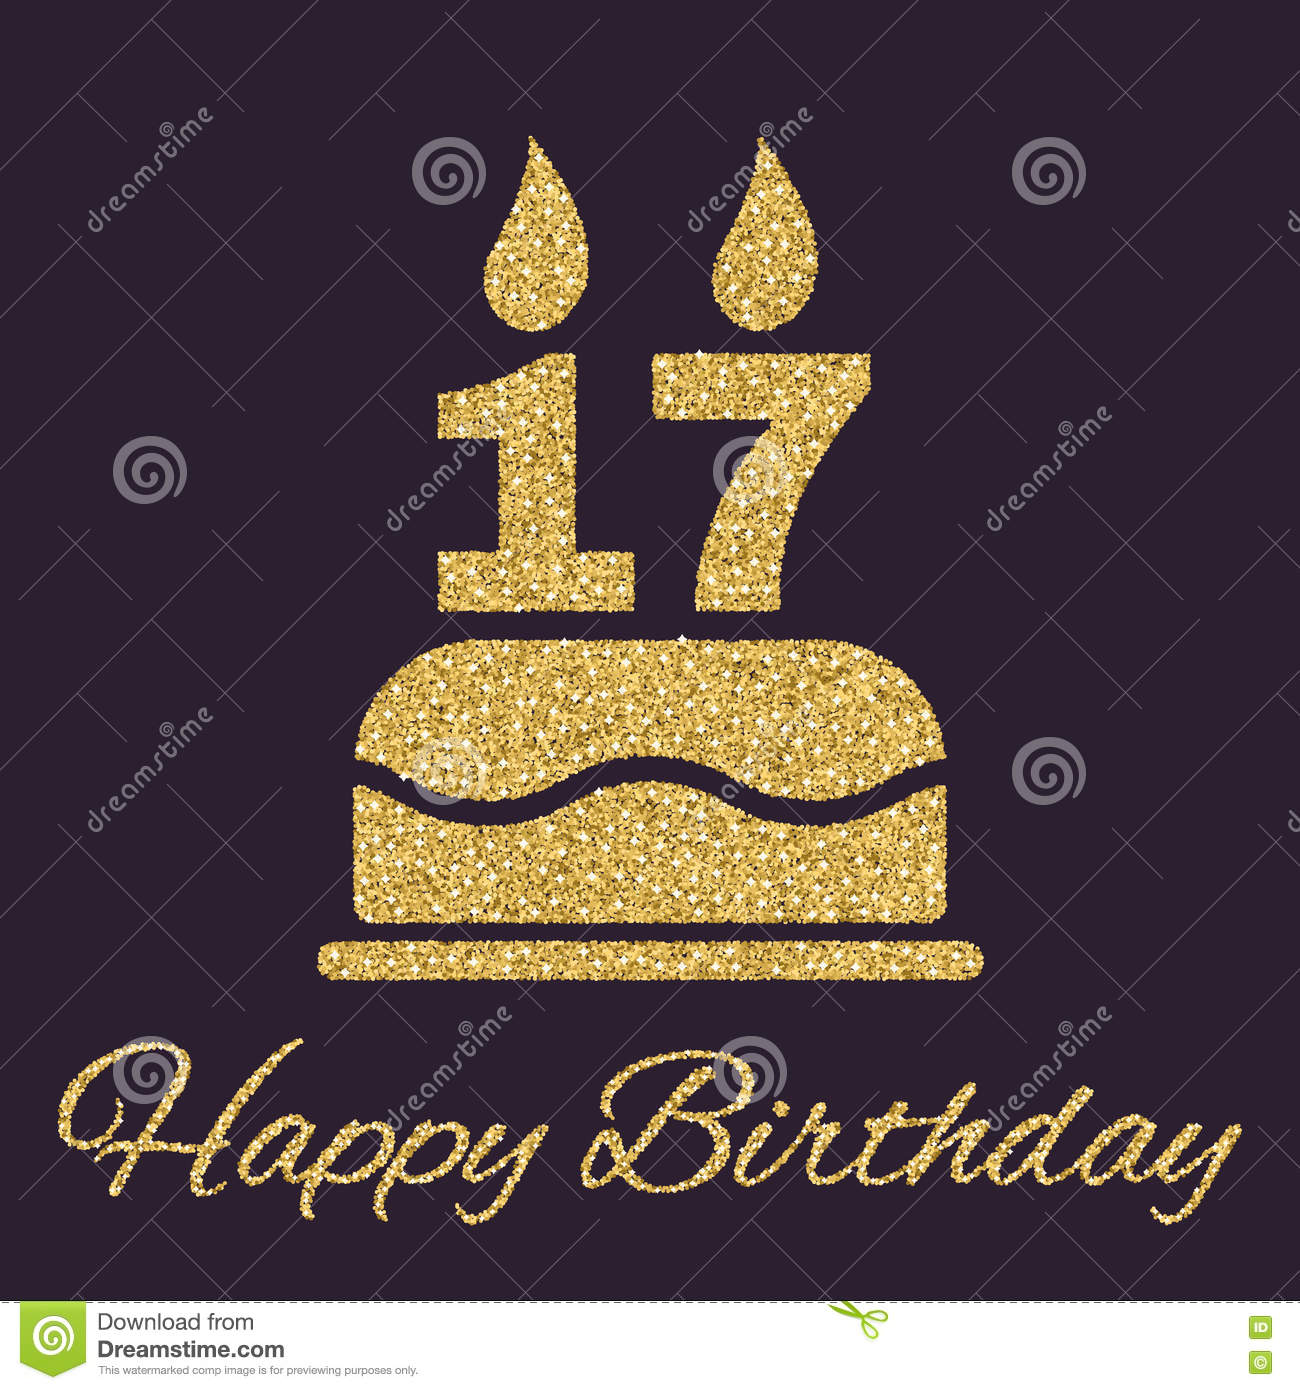 The Birthday Cake With Candles In Form Of Number 17 Icon Symbol Gold Sparkles And Glitter Vector Illustration